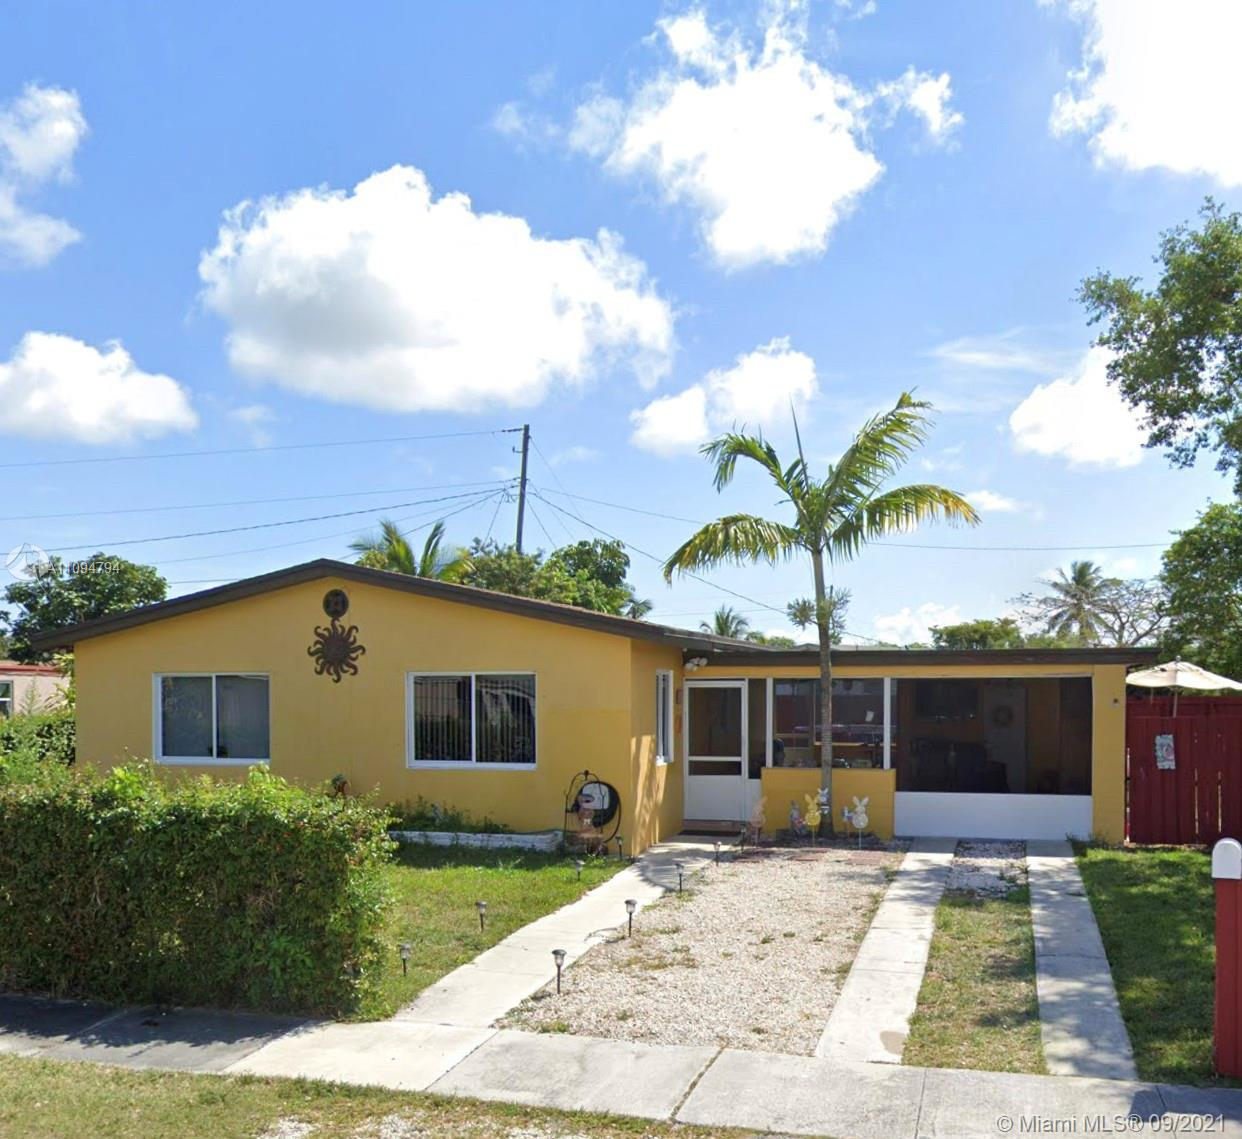 """Amazing opportunity to own a 3/1 single family home; Well maintained, a corner lot;  with a huge backyard for a pool or a boat.  completely fenced. centrally located in Cutler Bay, near shopping malls, schools, US 1, and turnpike.   """"COME TAKE A LOOK BEFORE IT'S GONE"""""""